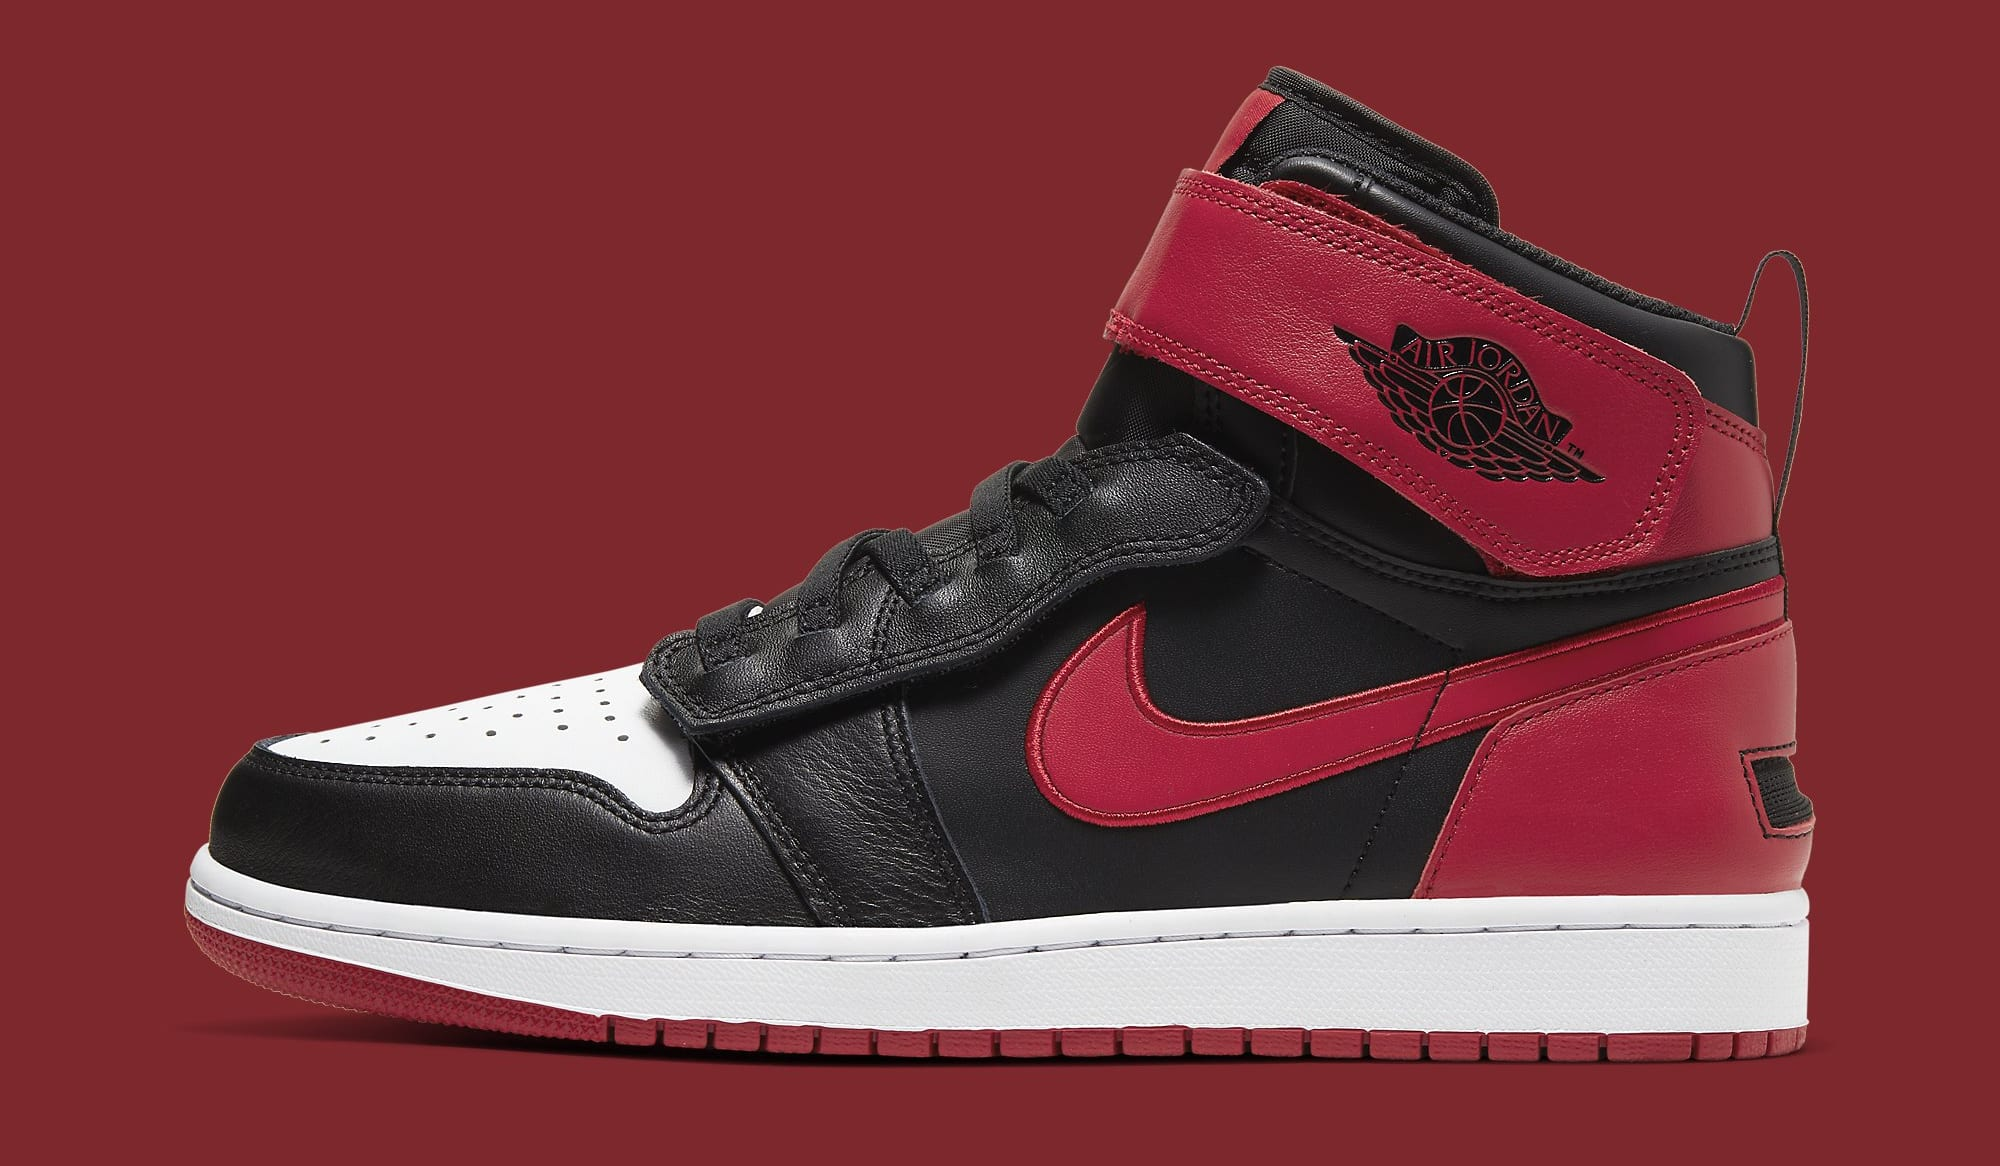 air-jordan-1-high-flyease-black-red-white-cq3835-001-lateral